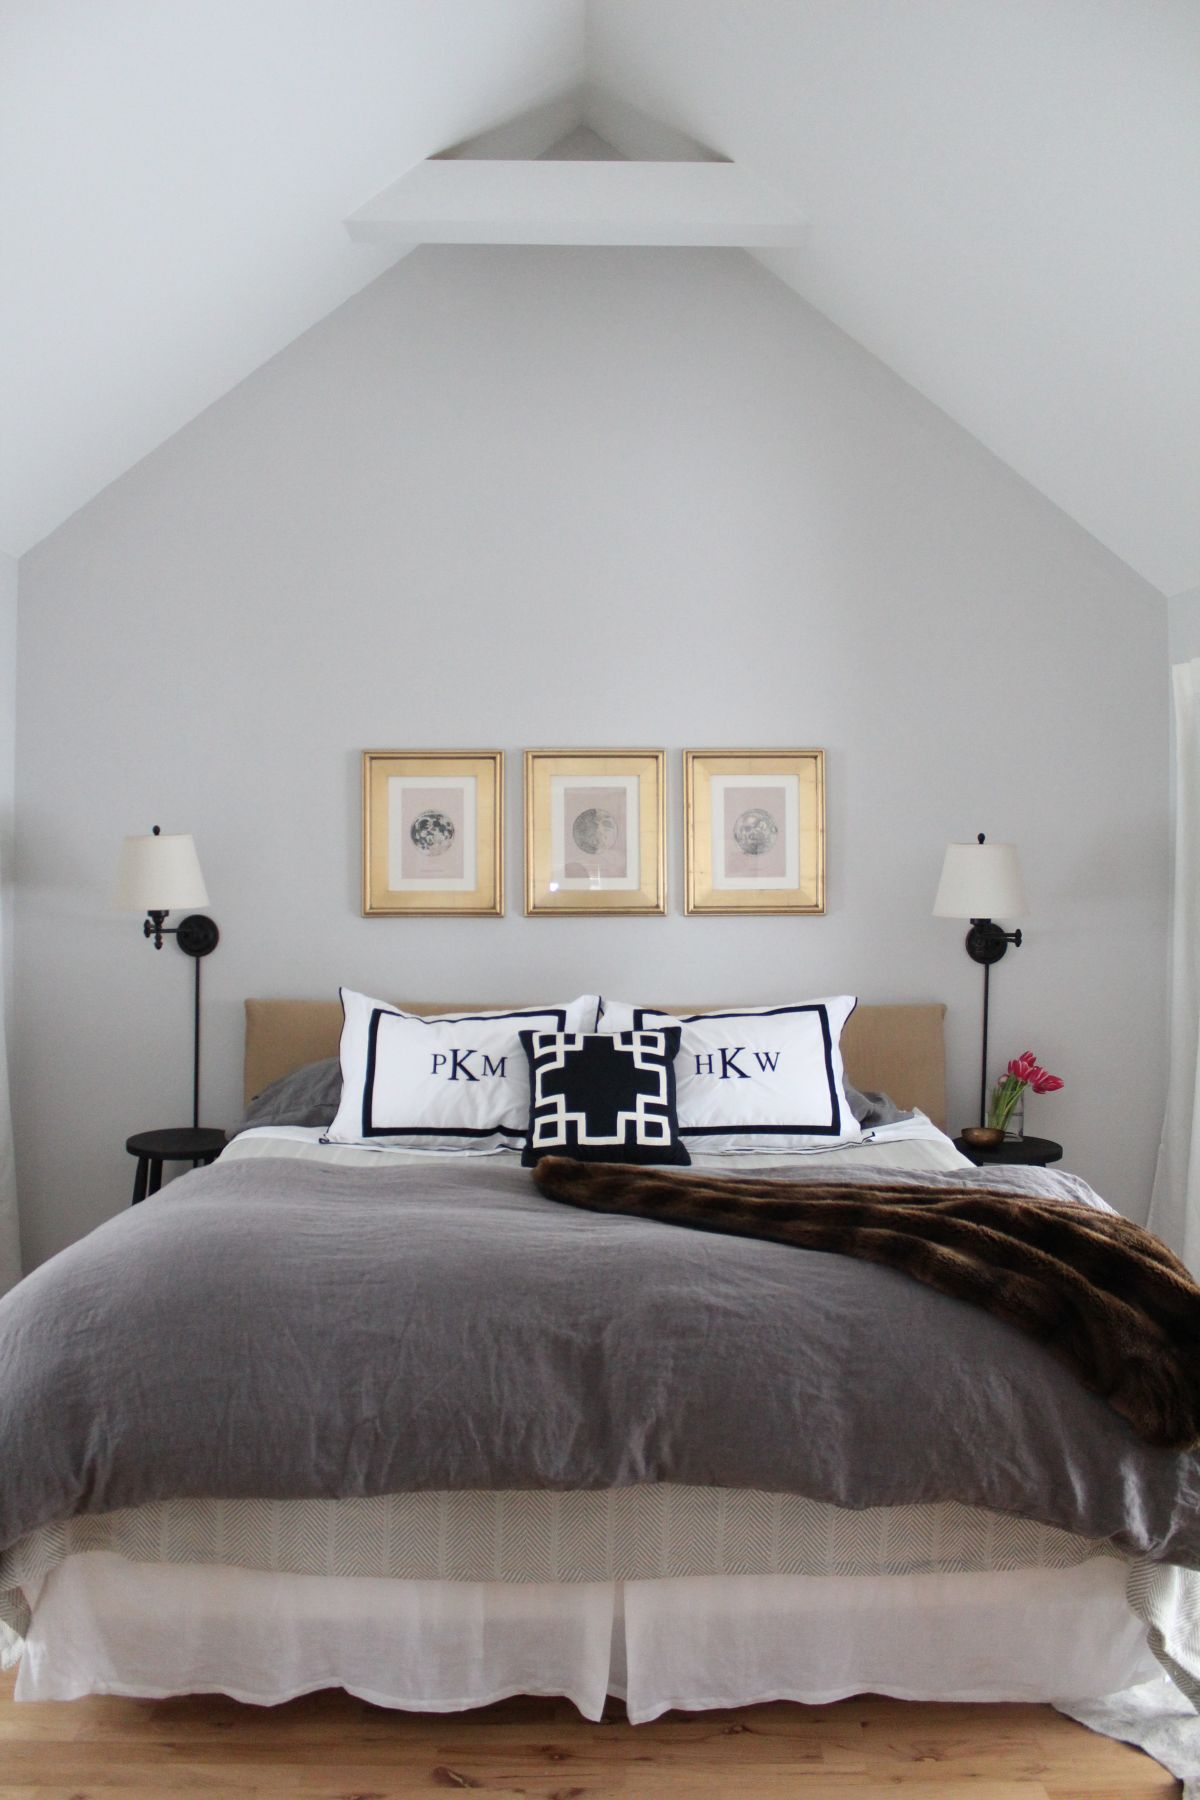 Is Black A Neutral Color how to use neutral colors without being boring: a roomroom guide